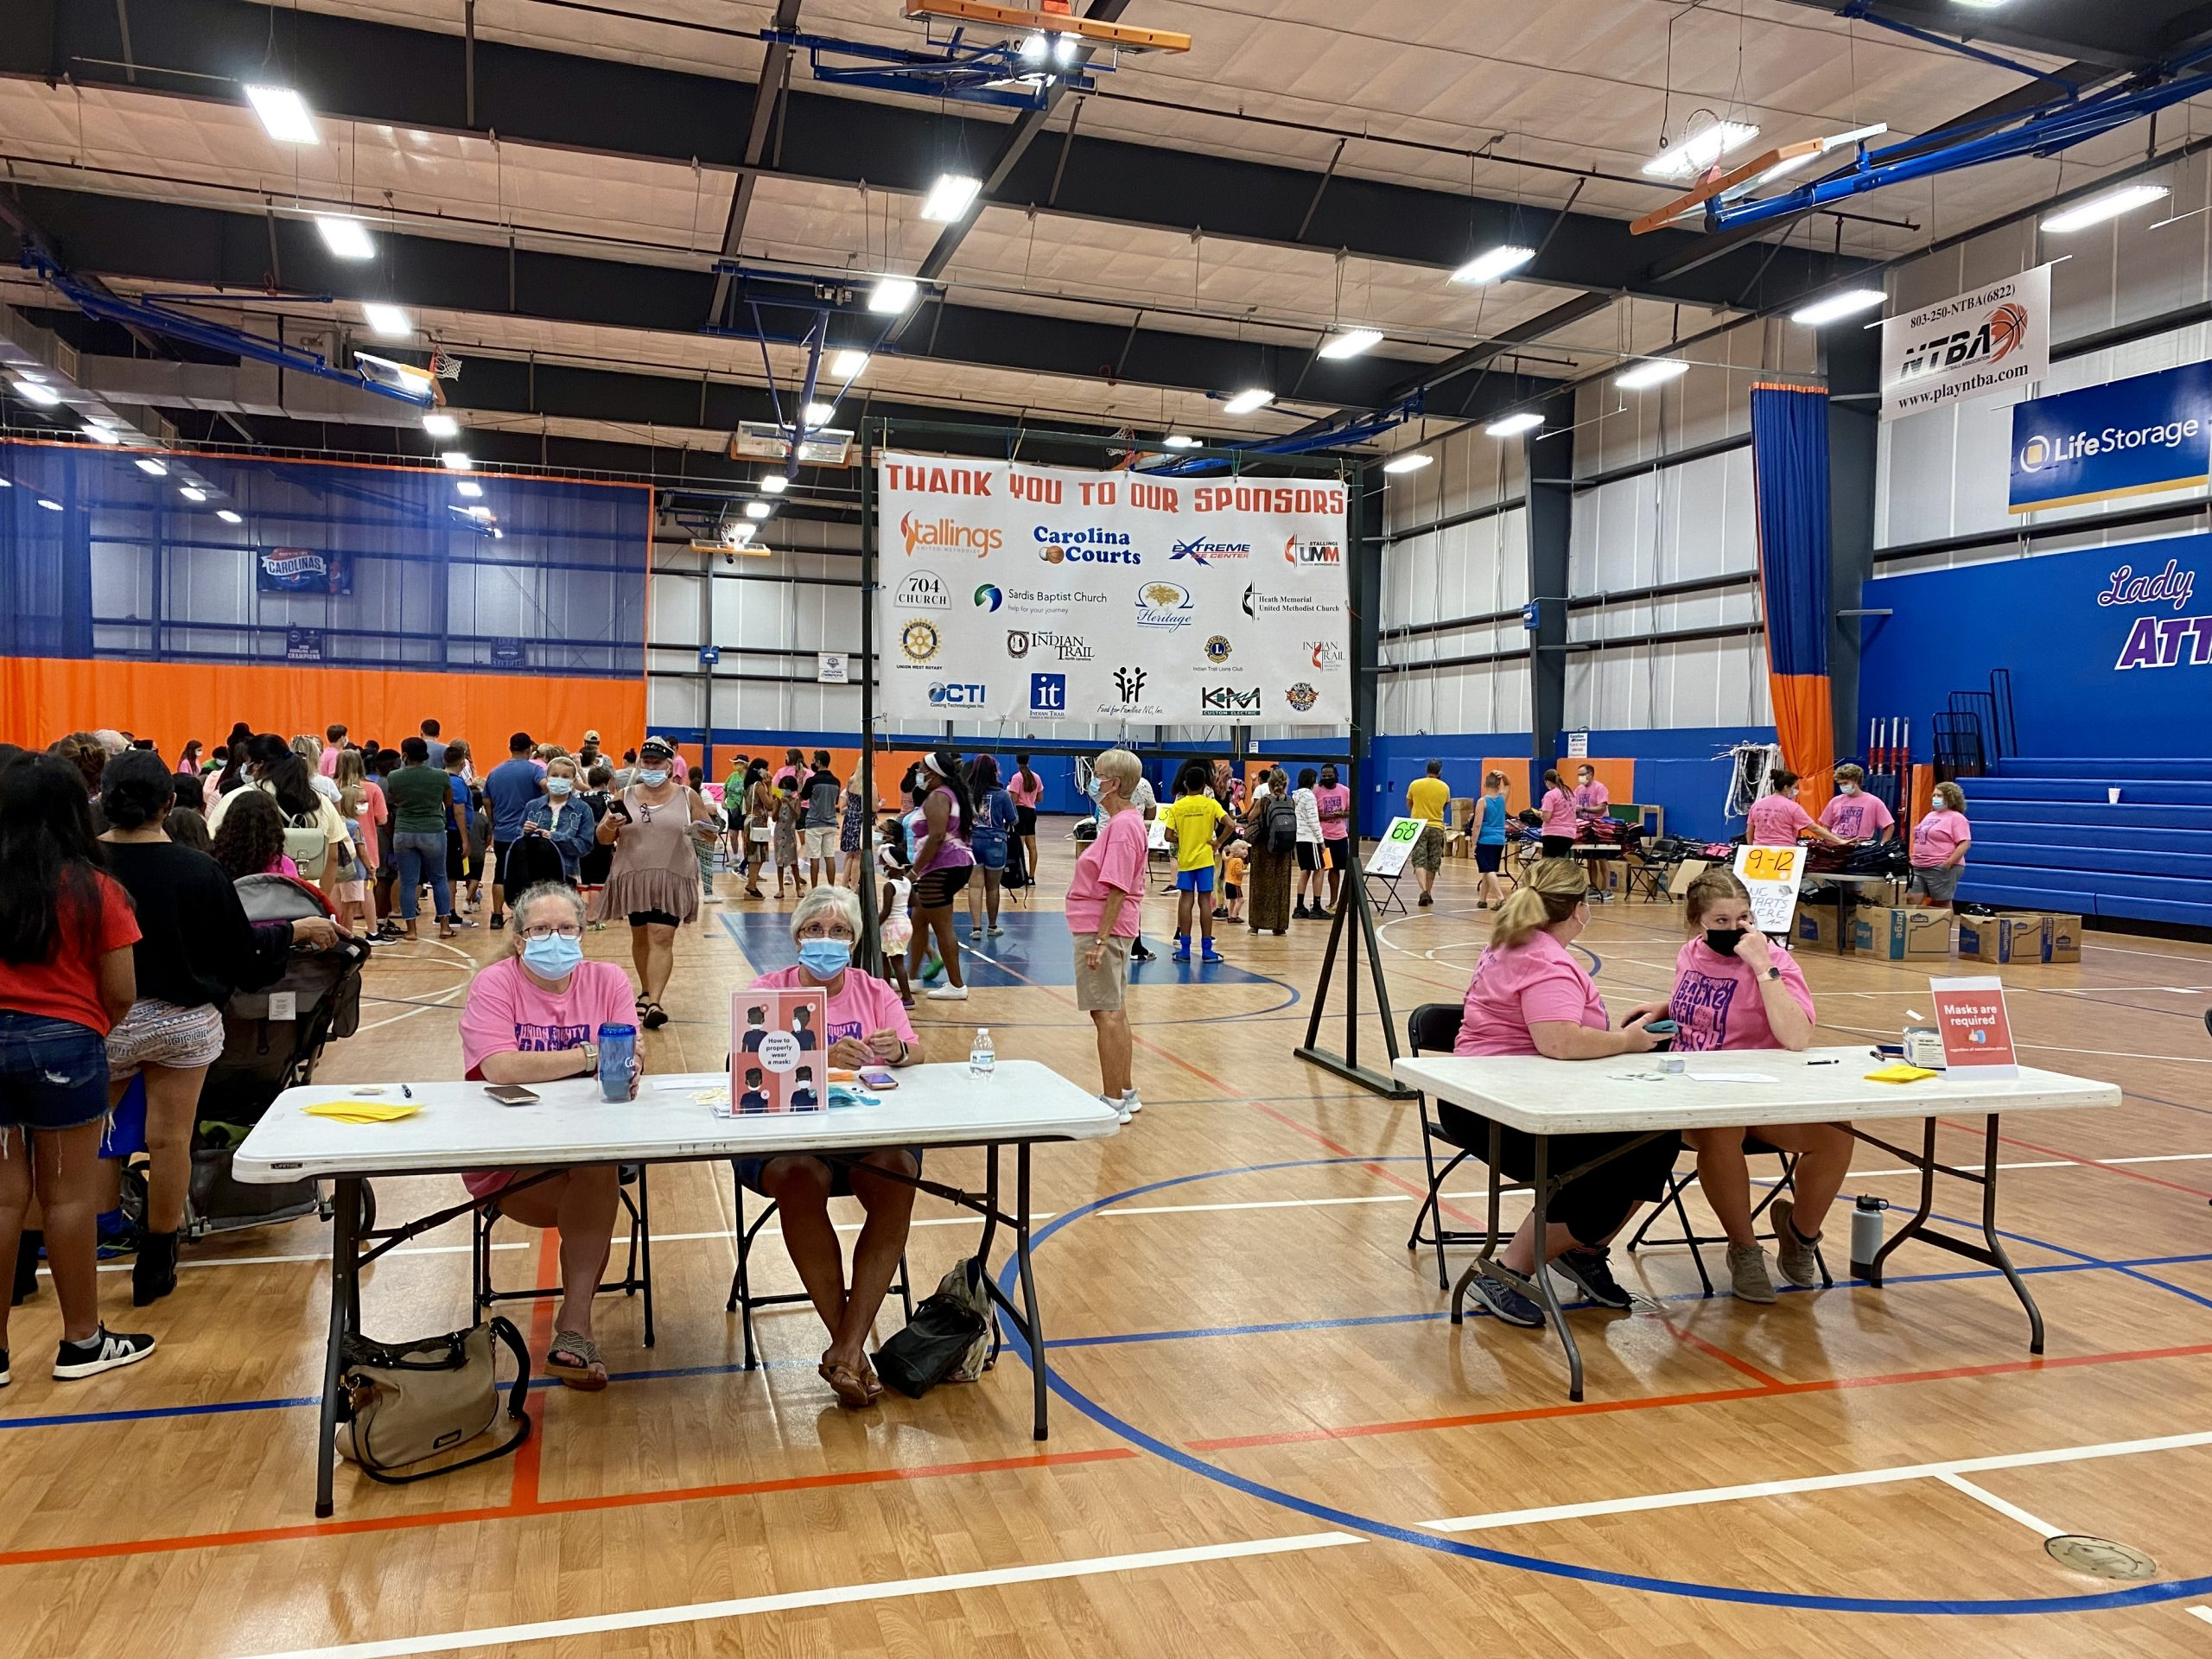 The Union County Back 2 School Bash was held Aug 14, 2021 at Carolina Courts in Indian Trail, NC.